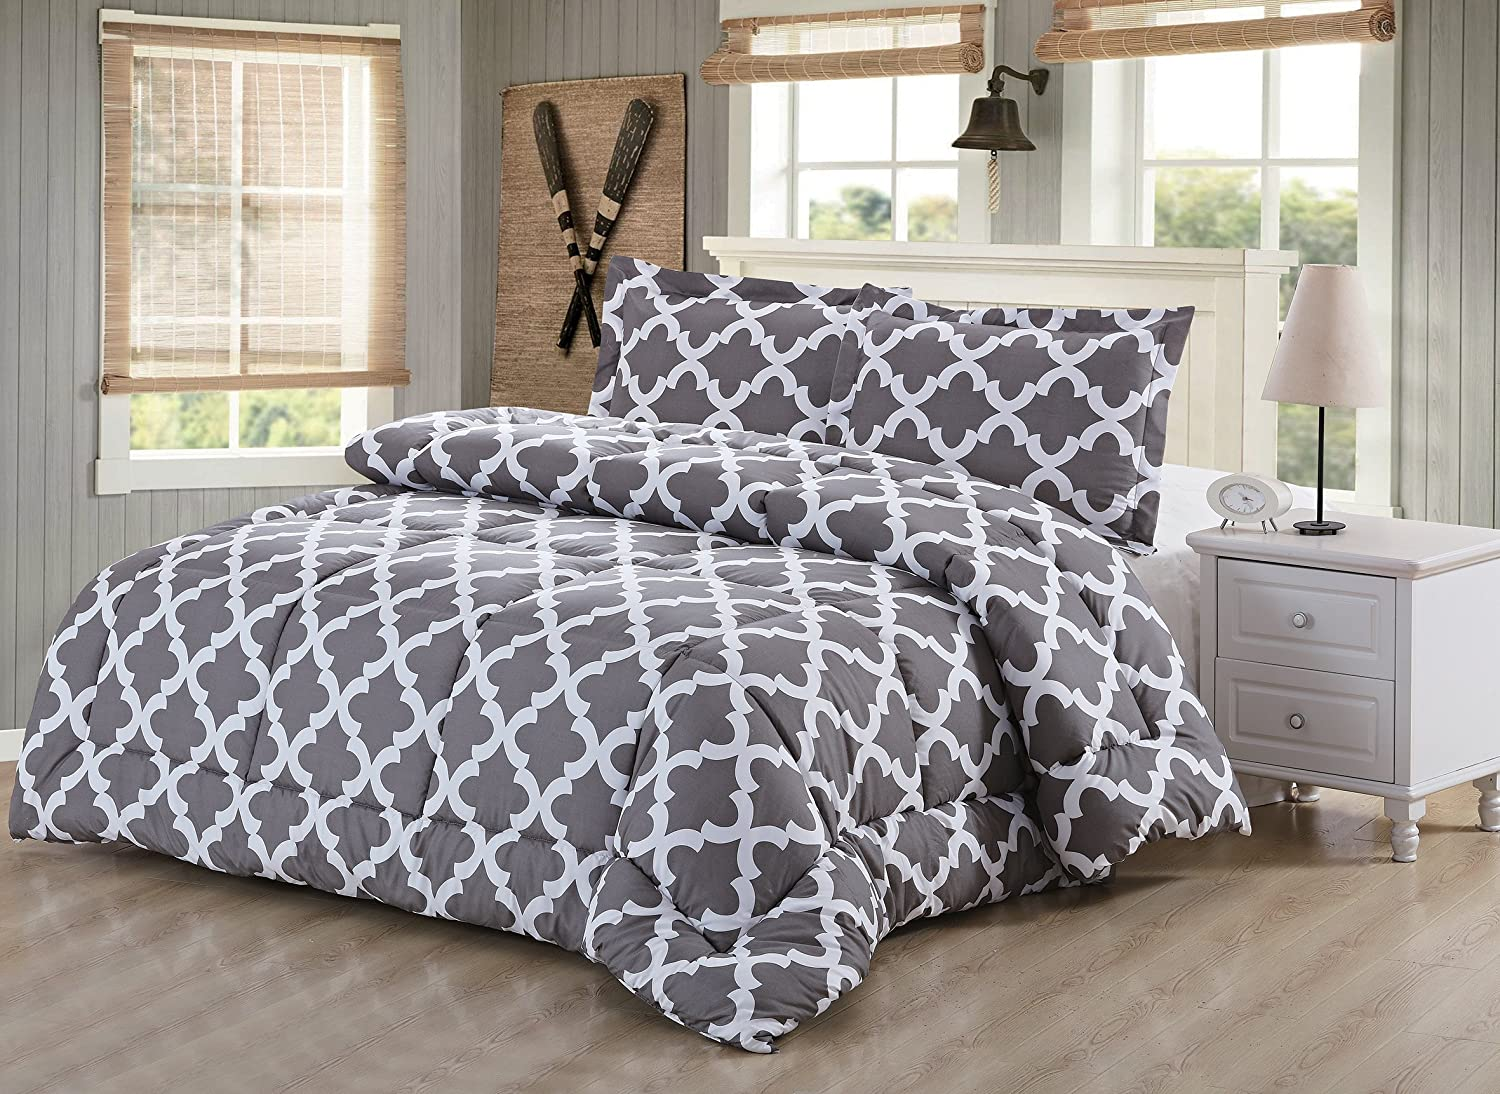 amazoncom printed comforter set grey twin with 1 pillow sham luxurious soft brushed microfiber goose down alternative comforter by utopia bedding